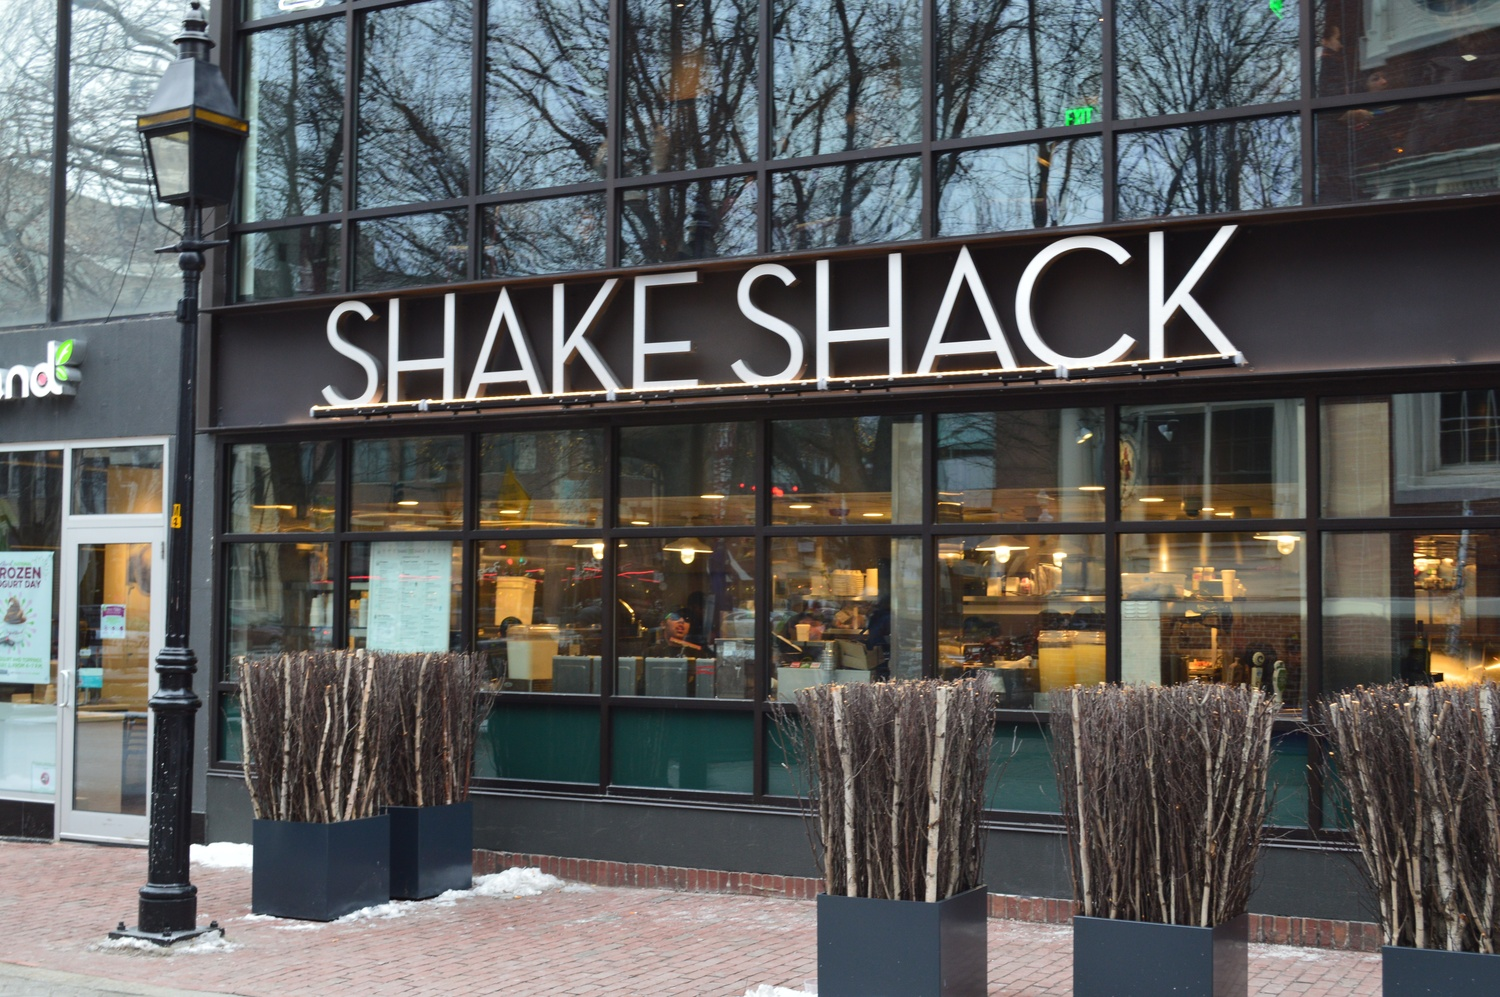 Shake Shack has attracted large numbers of students and locals since it arrived in Winthrop Square earlier in January.